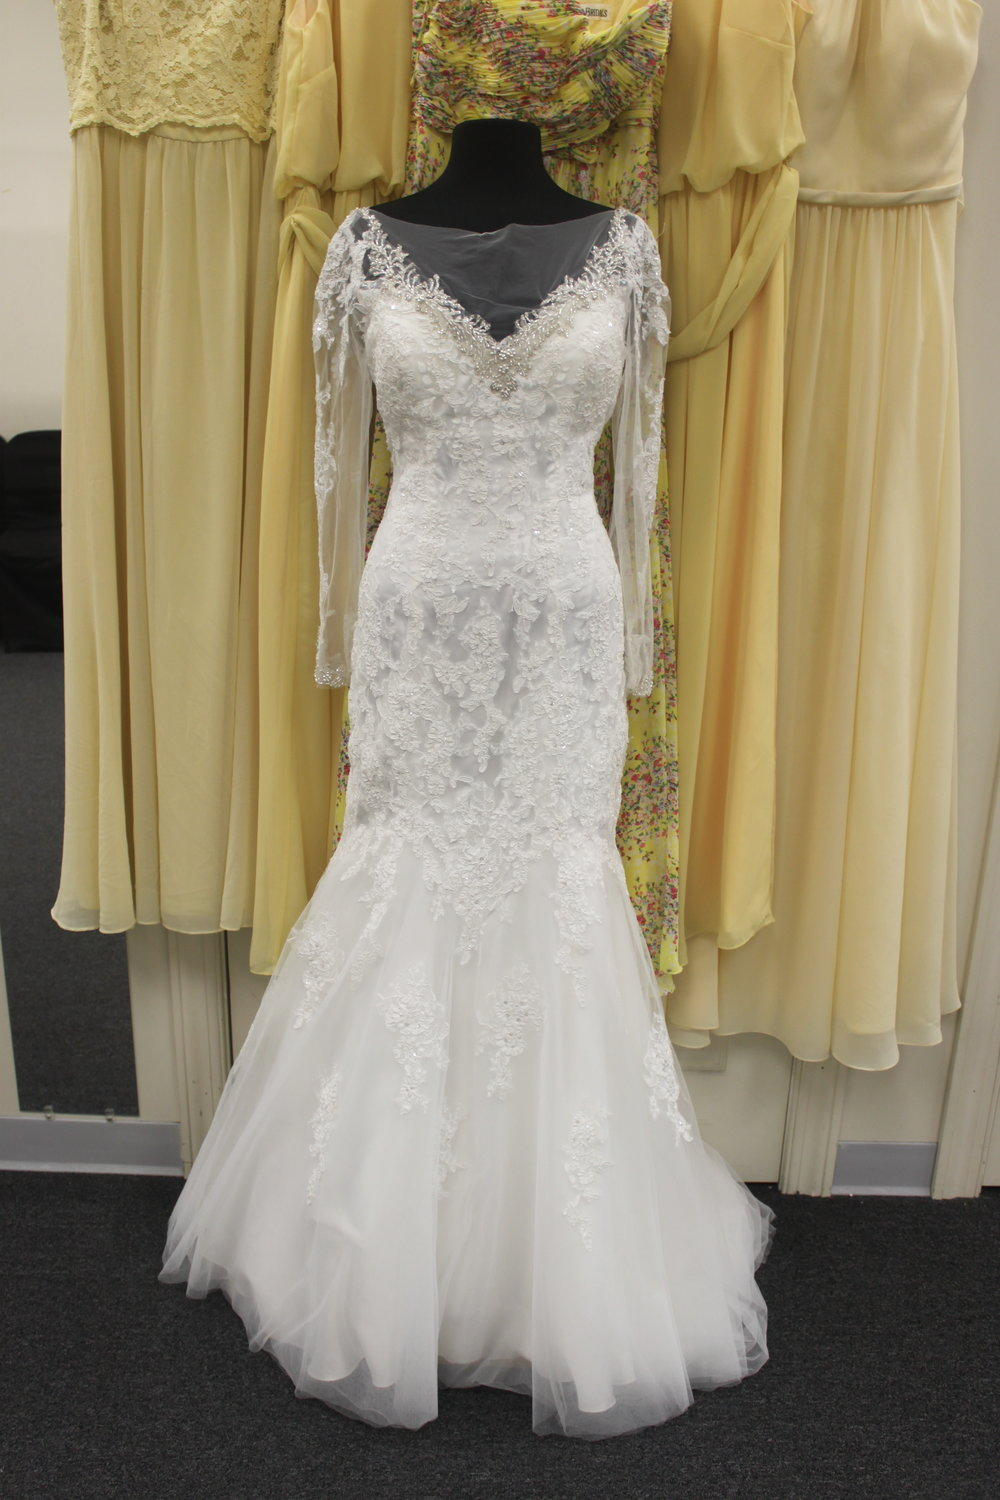 Private Collection - 20975-12Location: BloomingtonSize: 12This dress is brand NEW!Original Retail Price: $1200OUR Price: $782